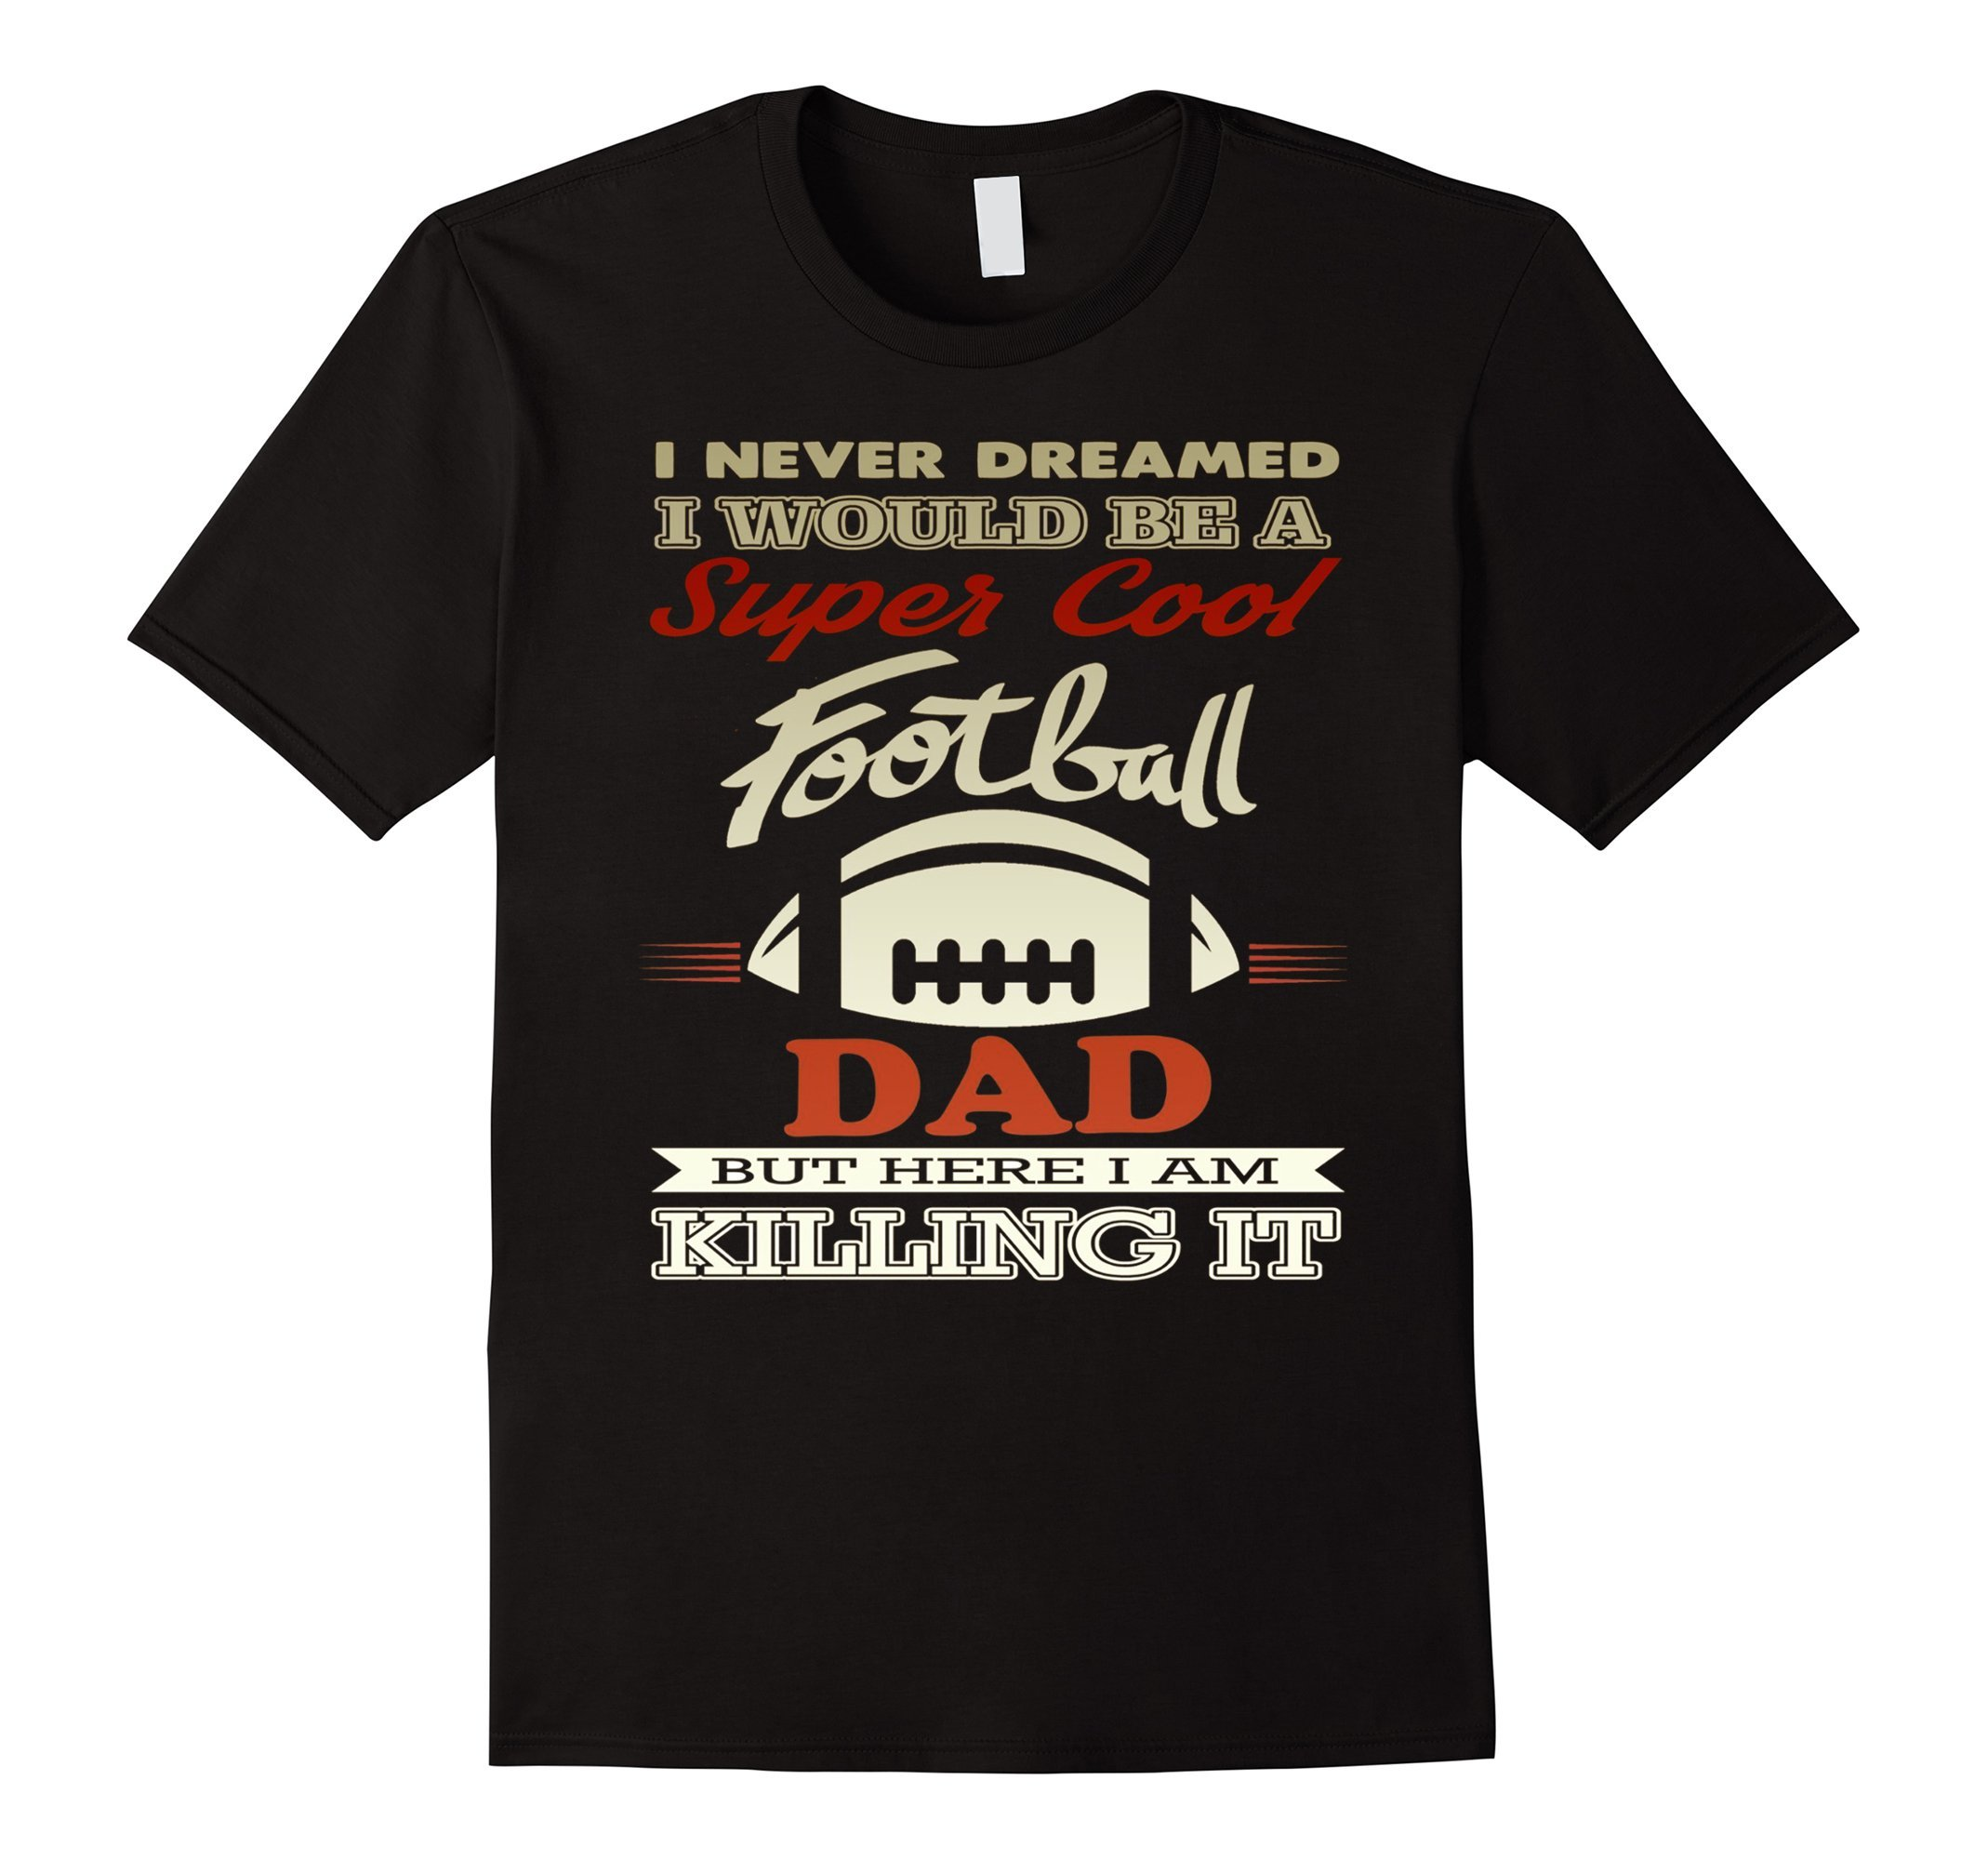 Men 39 S Father 39 S Day Gift For A Super Cool Football Dad